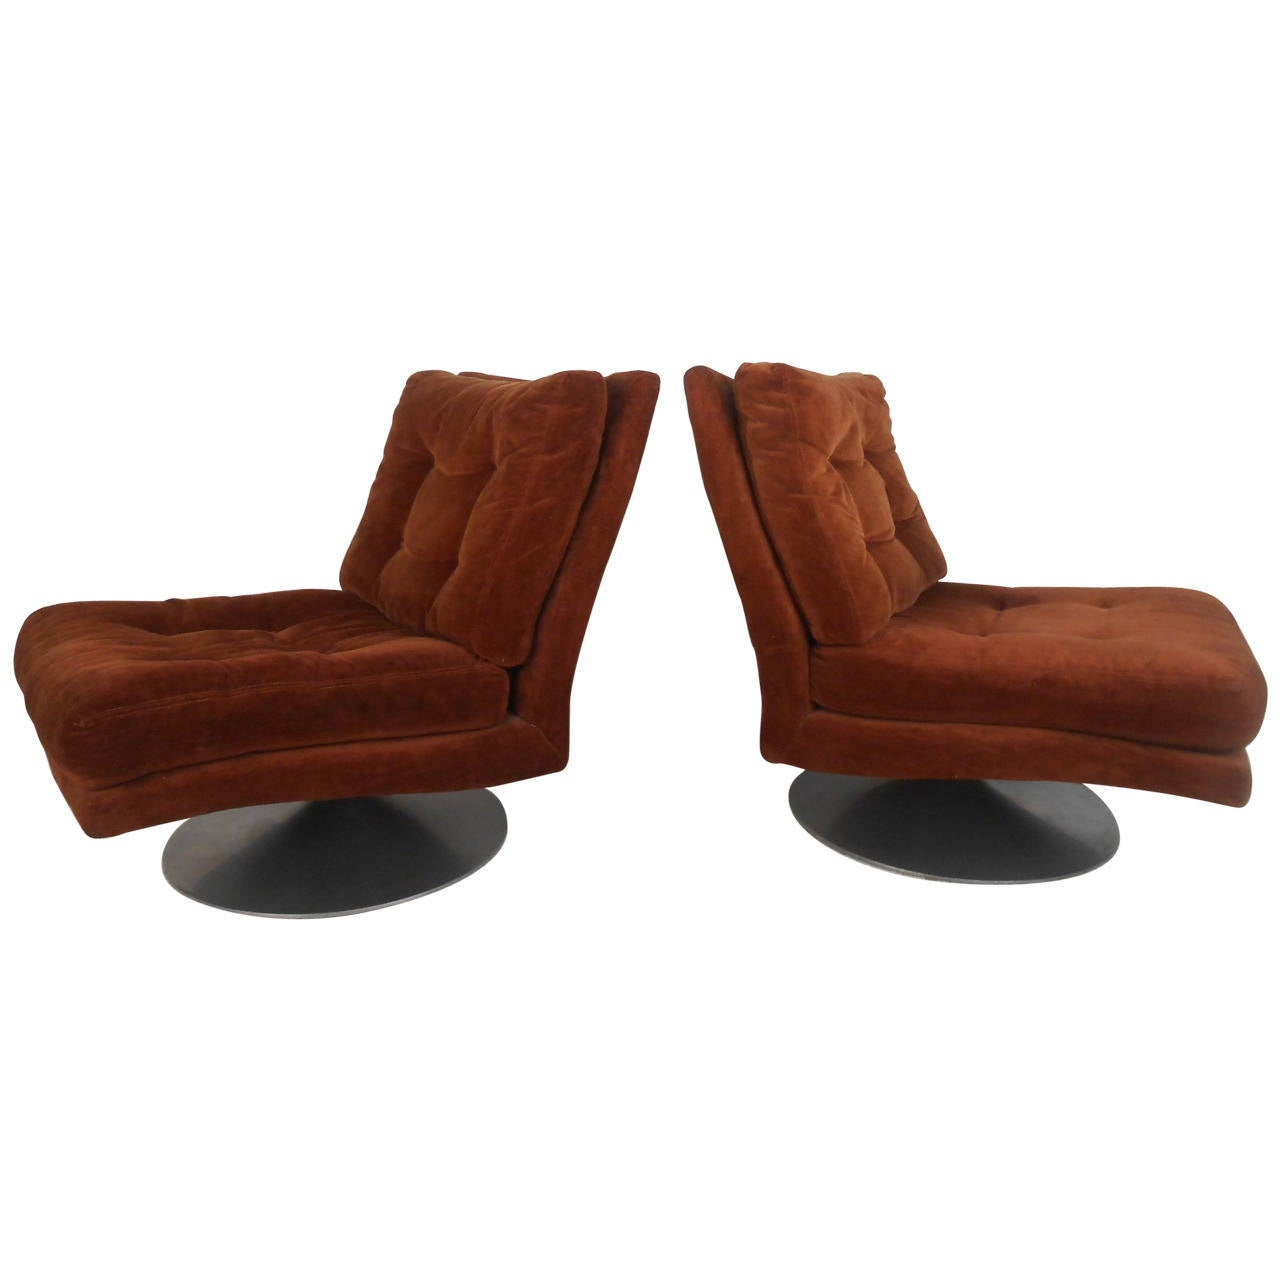 Milo Baughman Lounge Chairs for Thayer Coggin For Sale